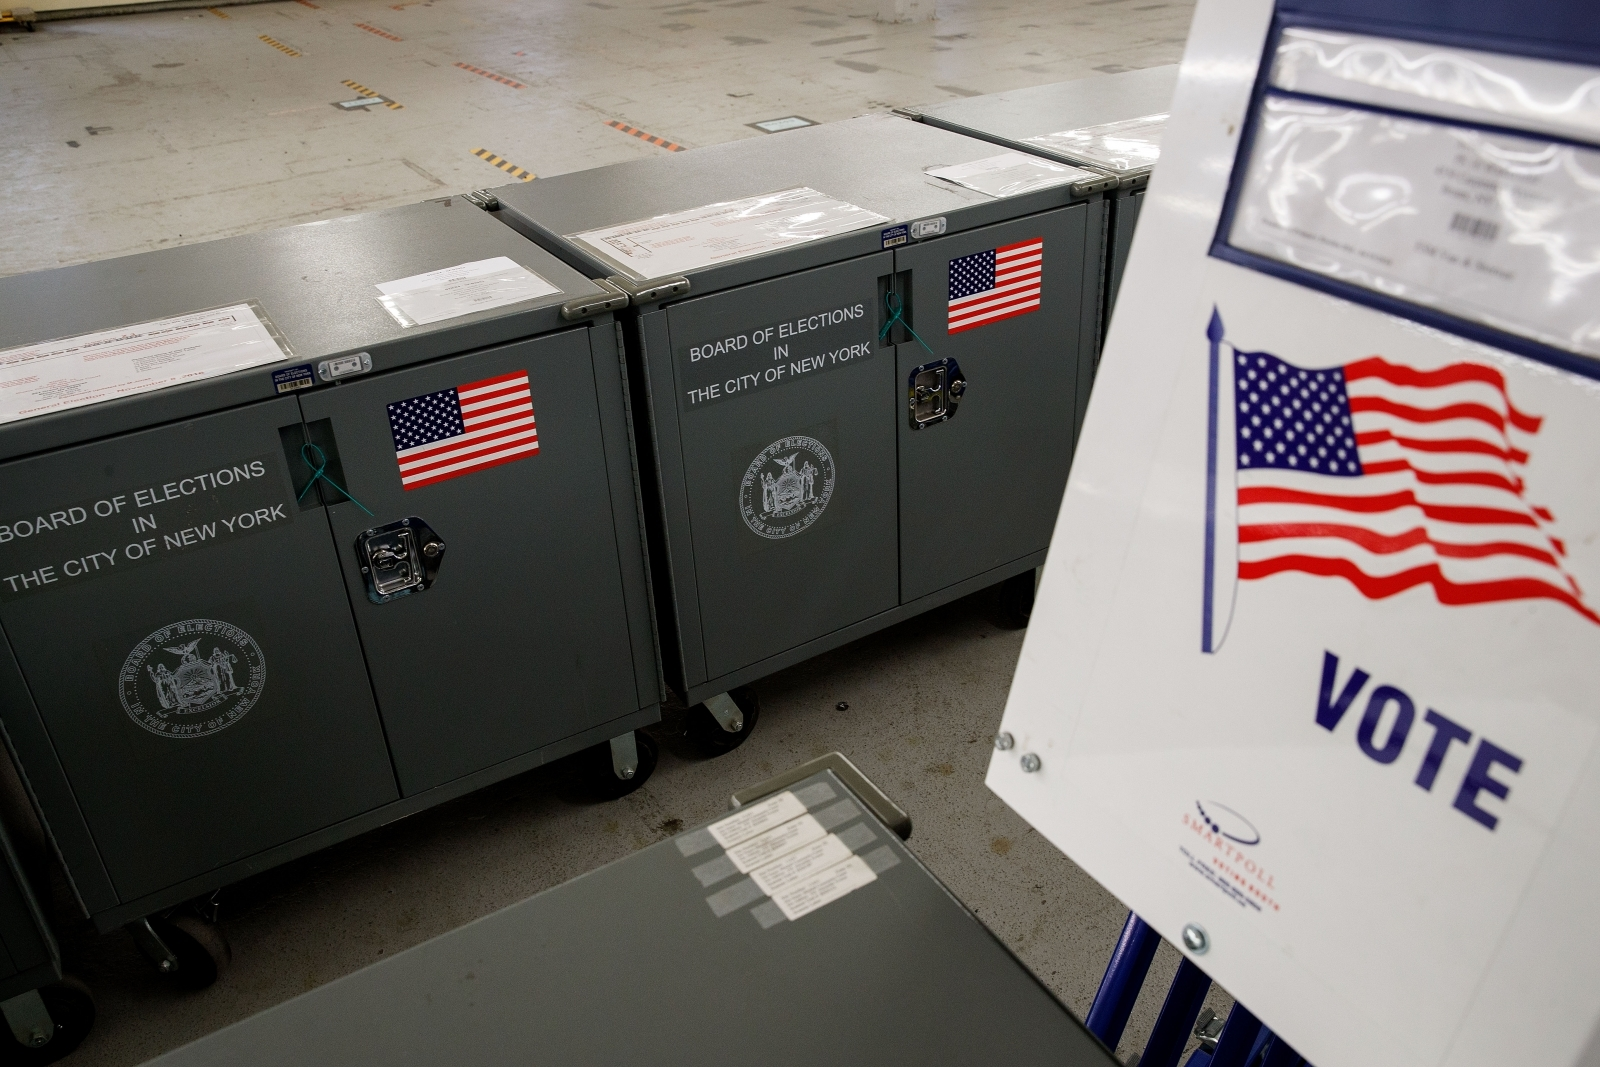 Hackers break into voting machines in minutes